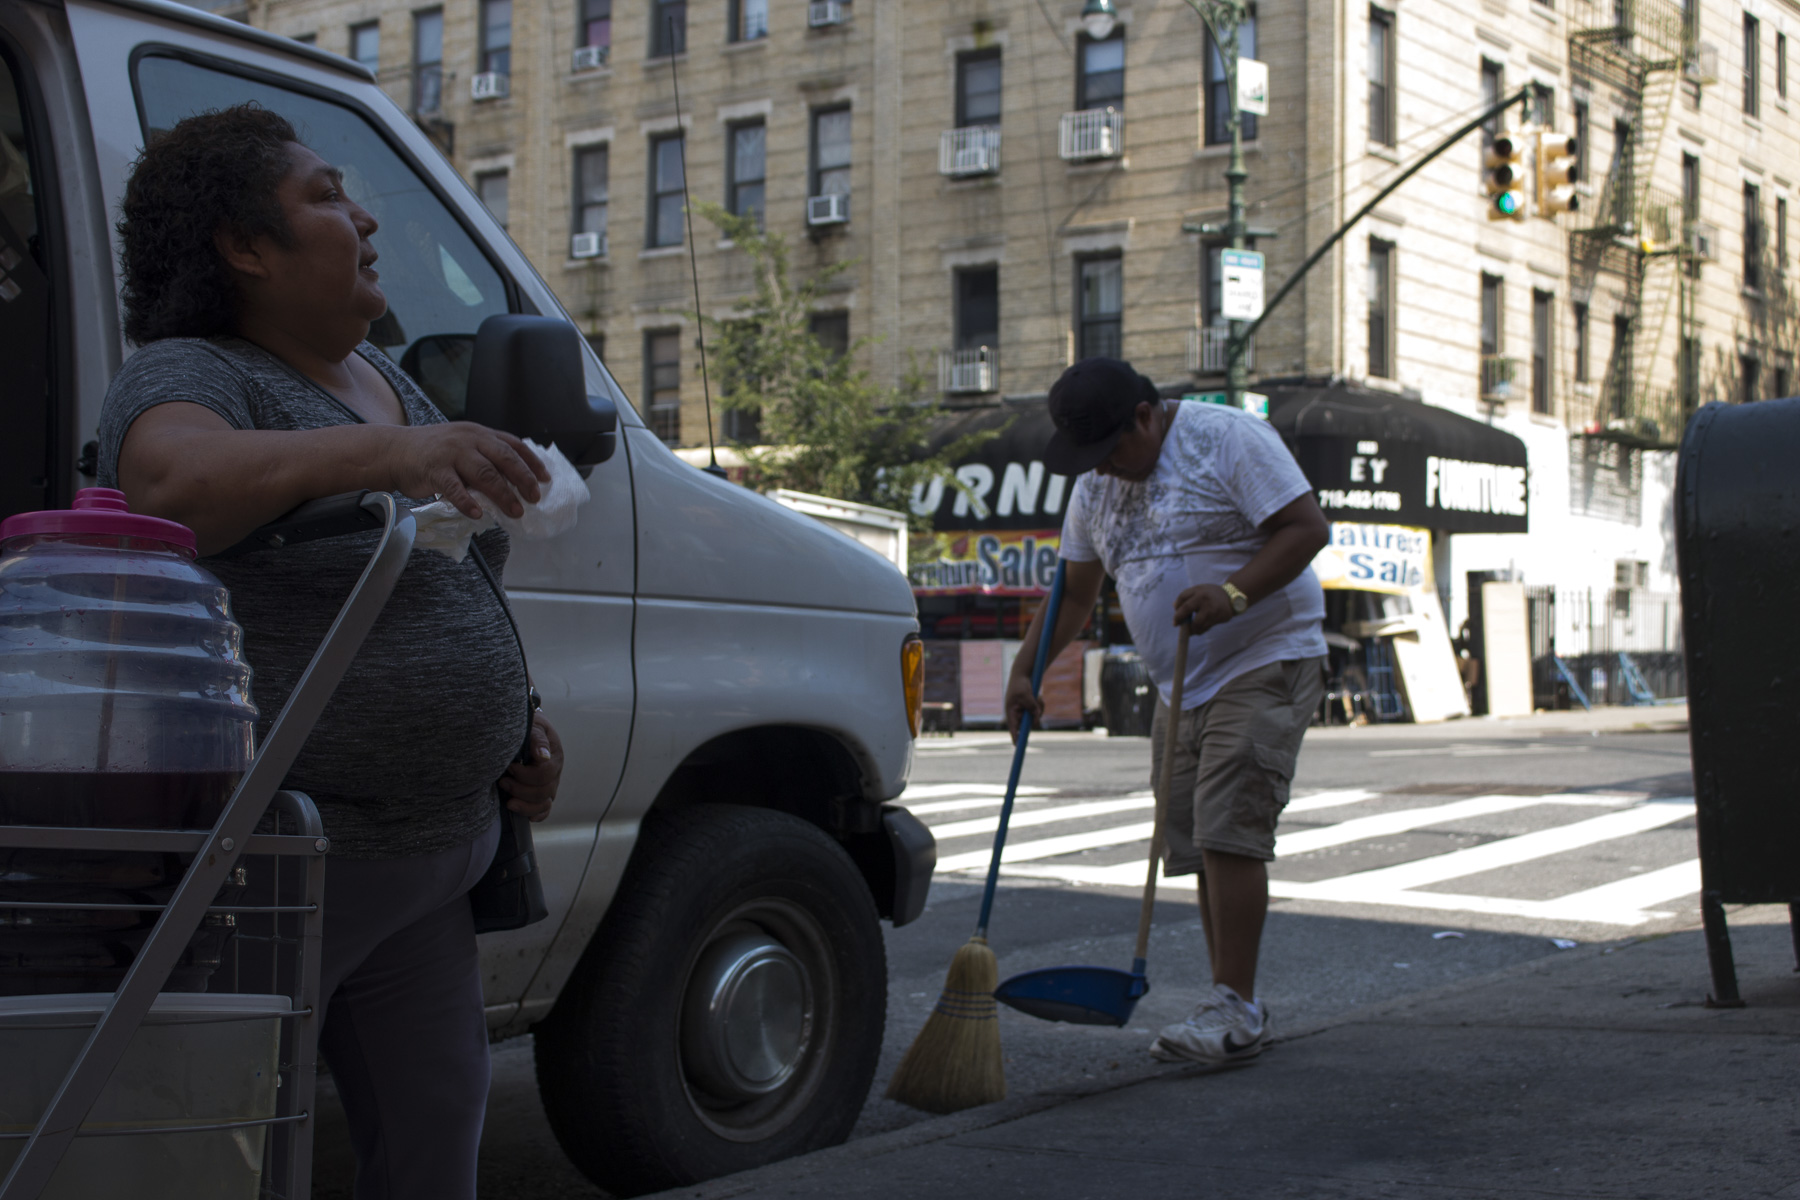 Sergio sweeps the corner of 5th and 56th street everyday before setting up the stand. On August 22, 2017, Teodosia stands there speaking to us and him.